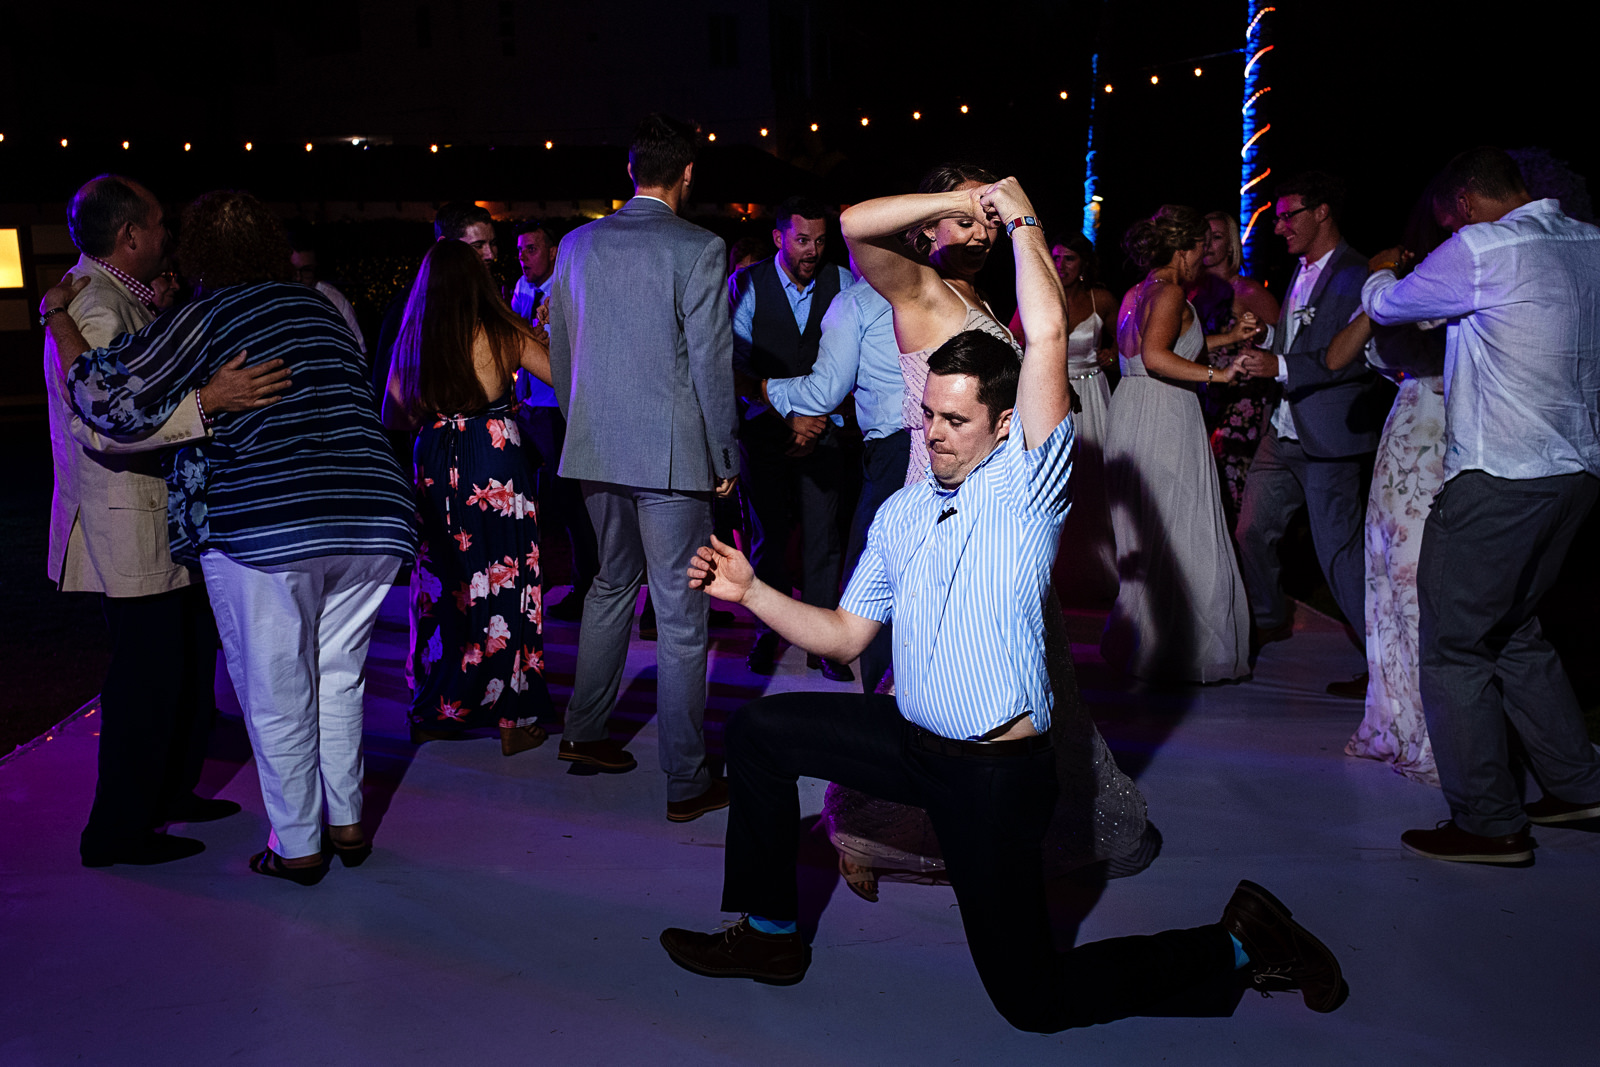 Crazy dance moves from wedding guests